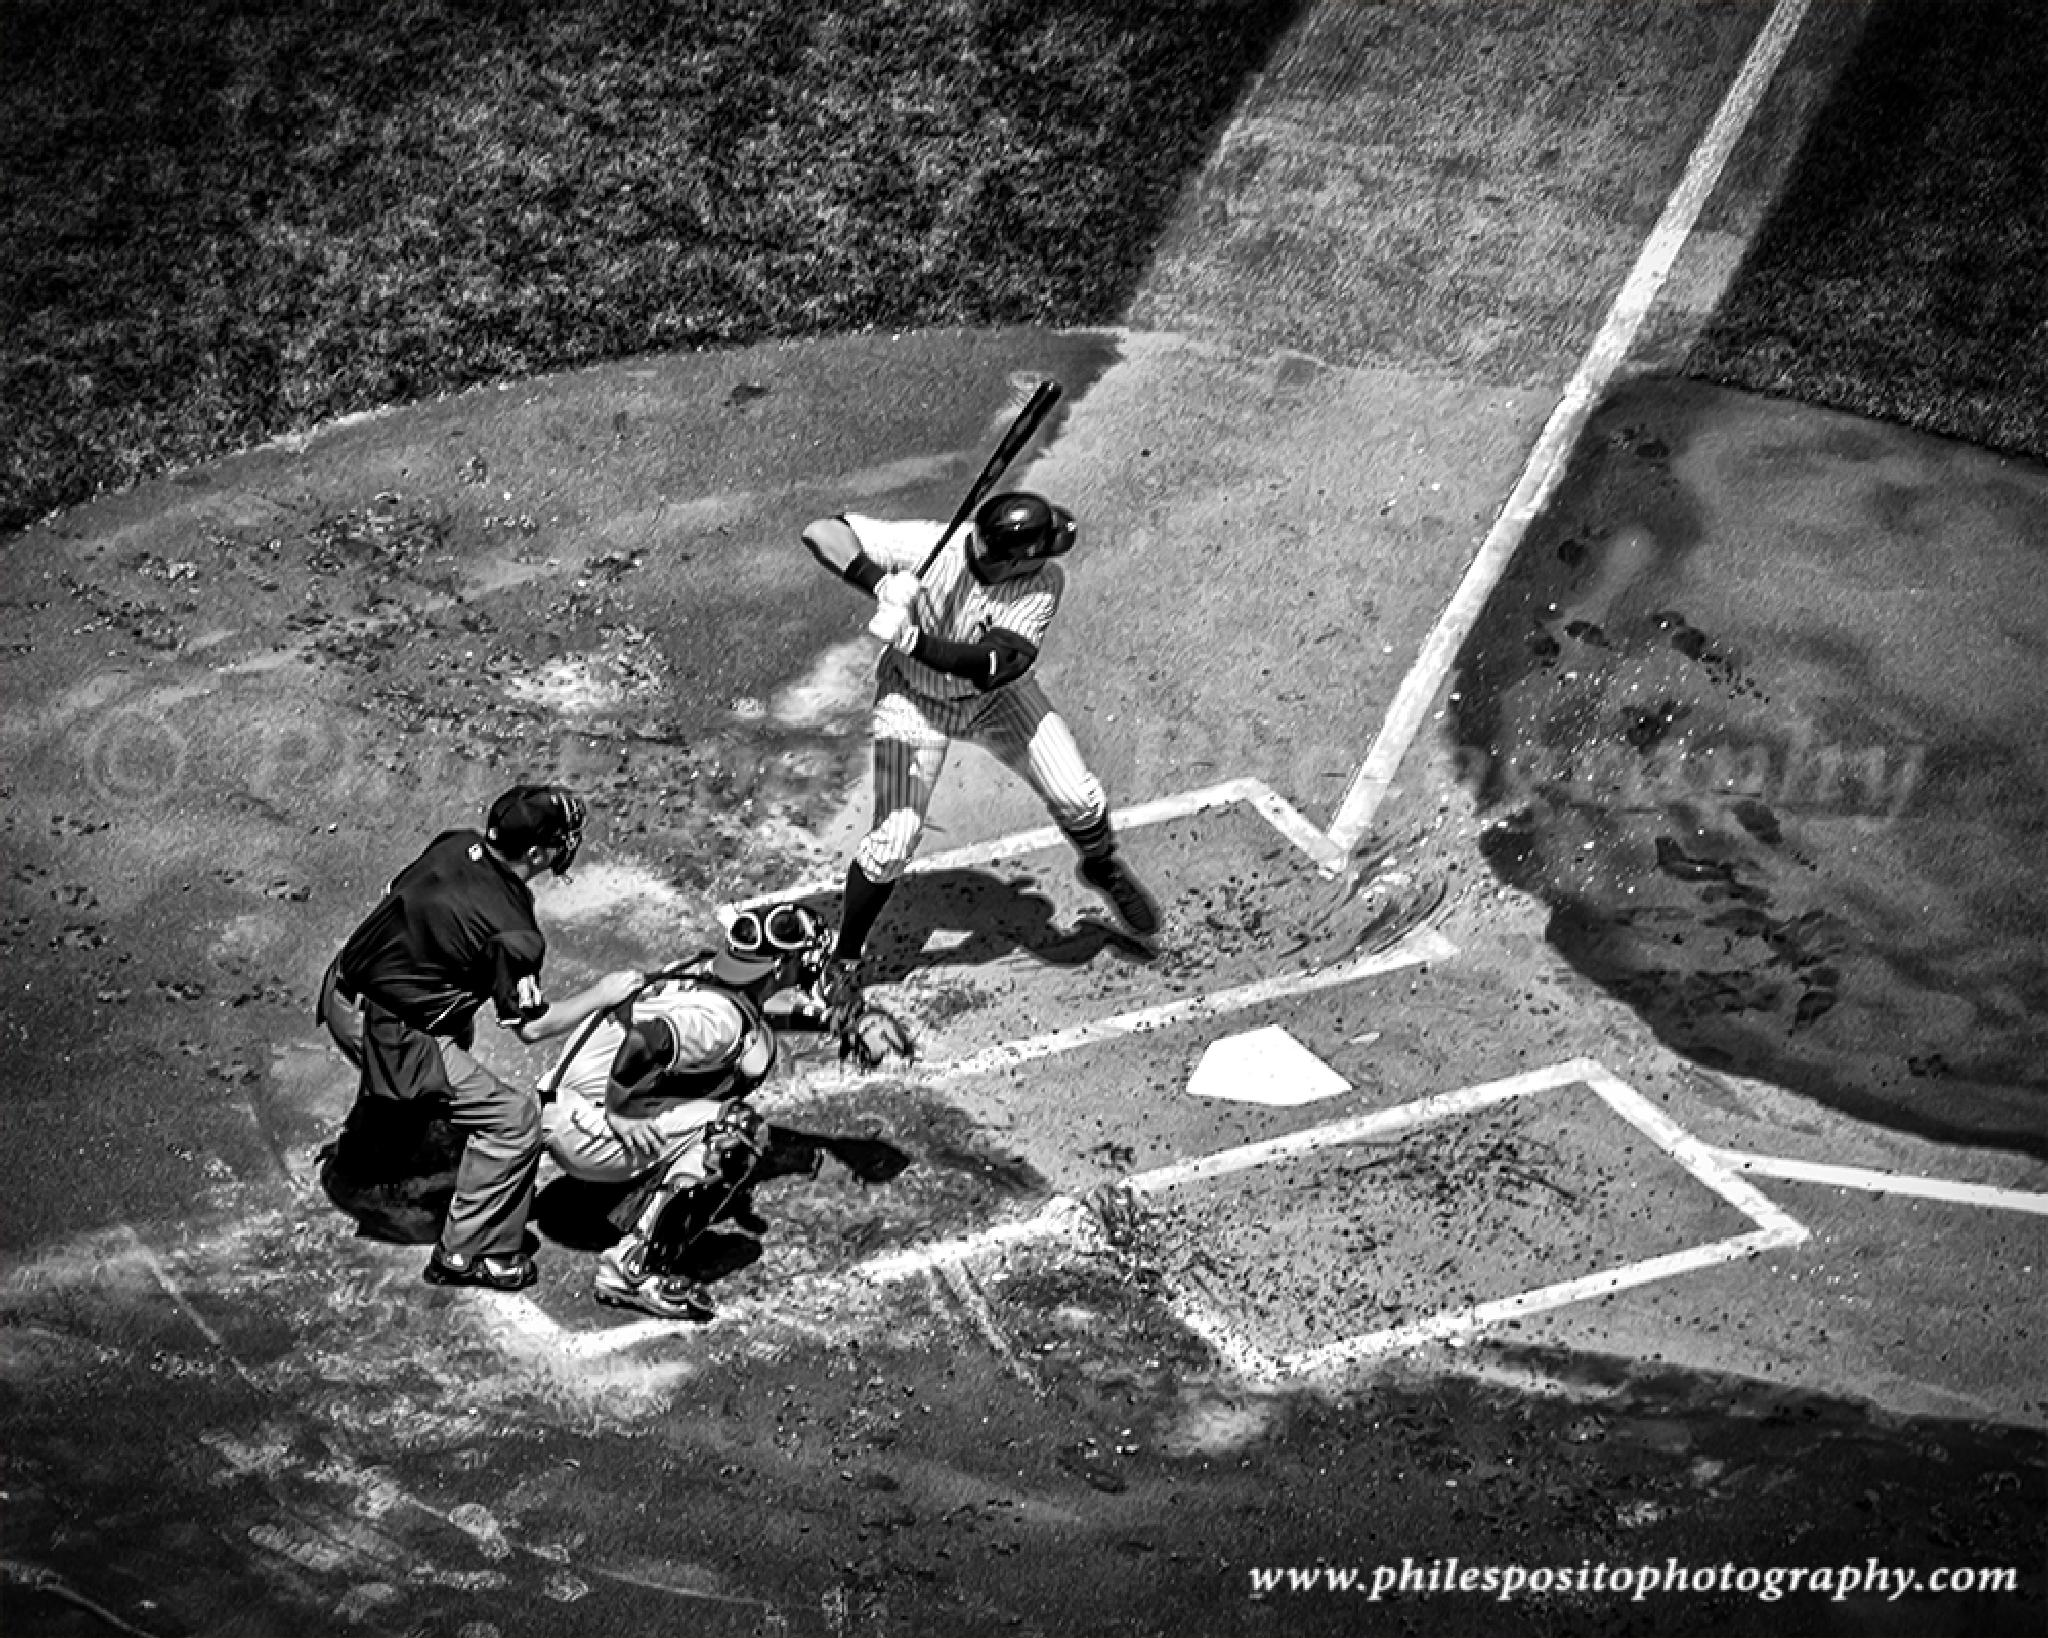 A Rod at the plate in B&W by Phil Esposito